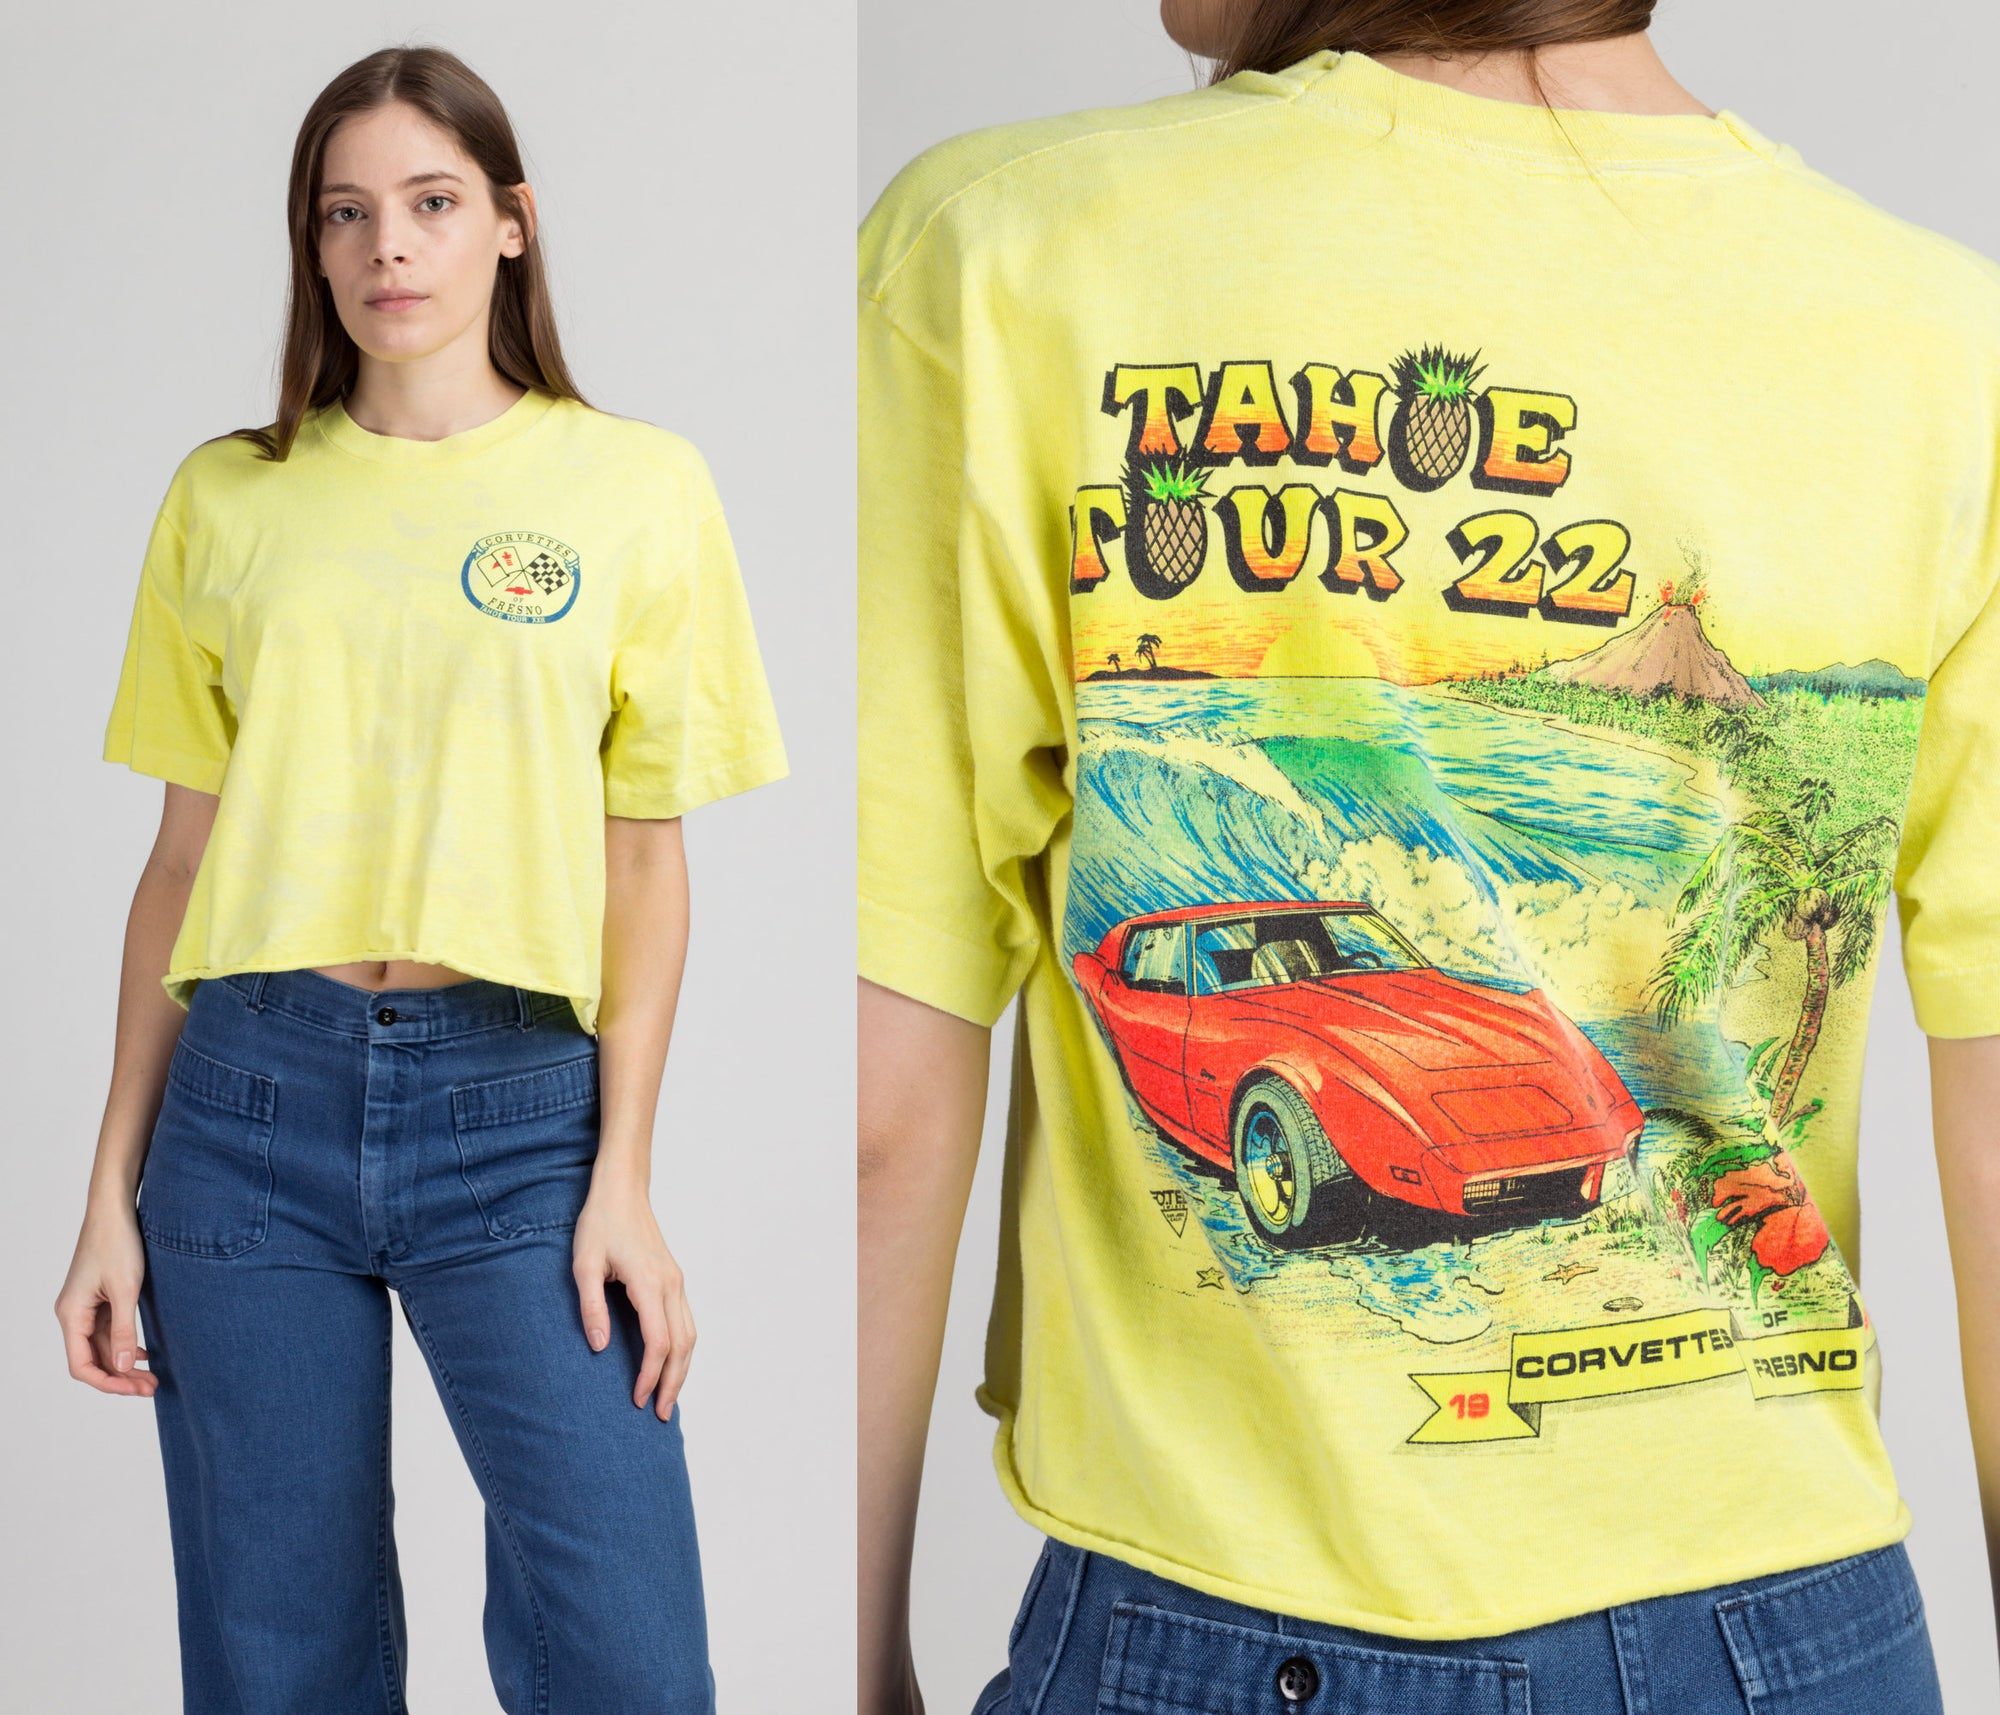 90s Corvette Tahoe Tour Cropped T Shirt - Large | Vintage Neon Yellow Graphic Crop Top Car Tee